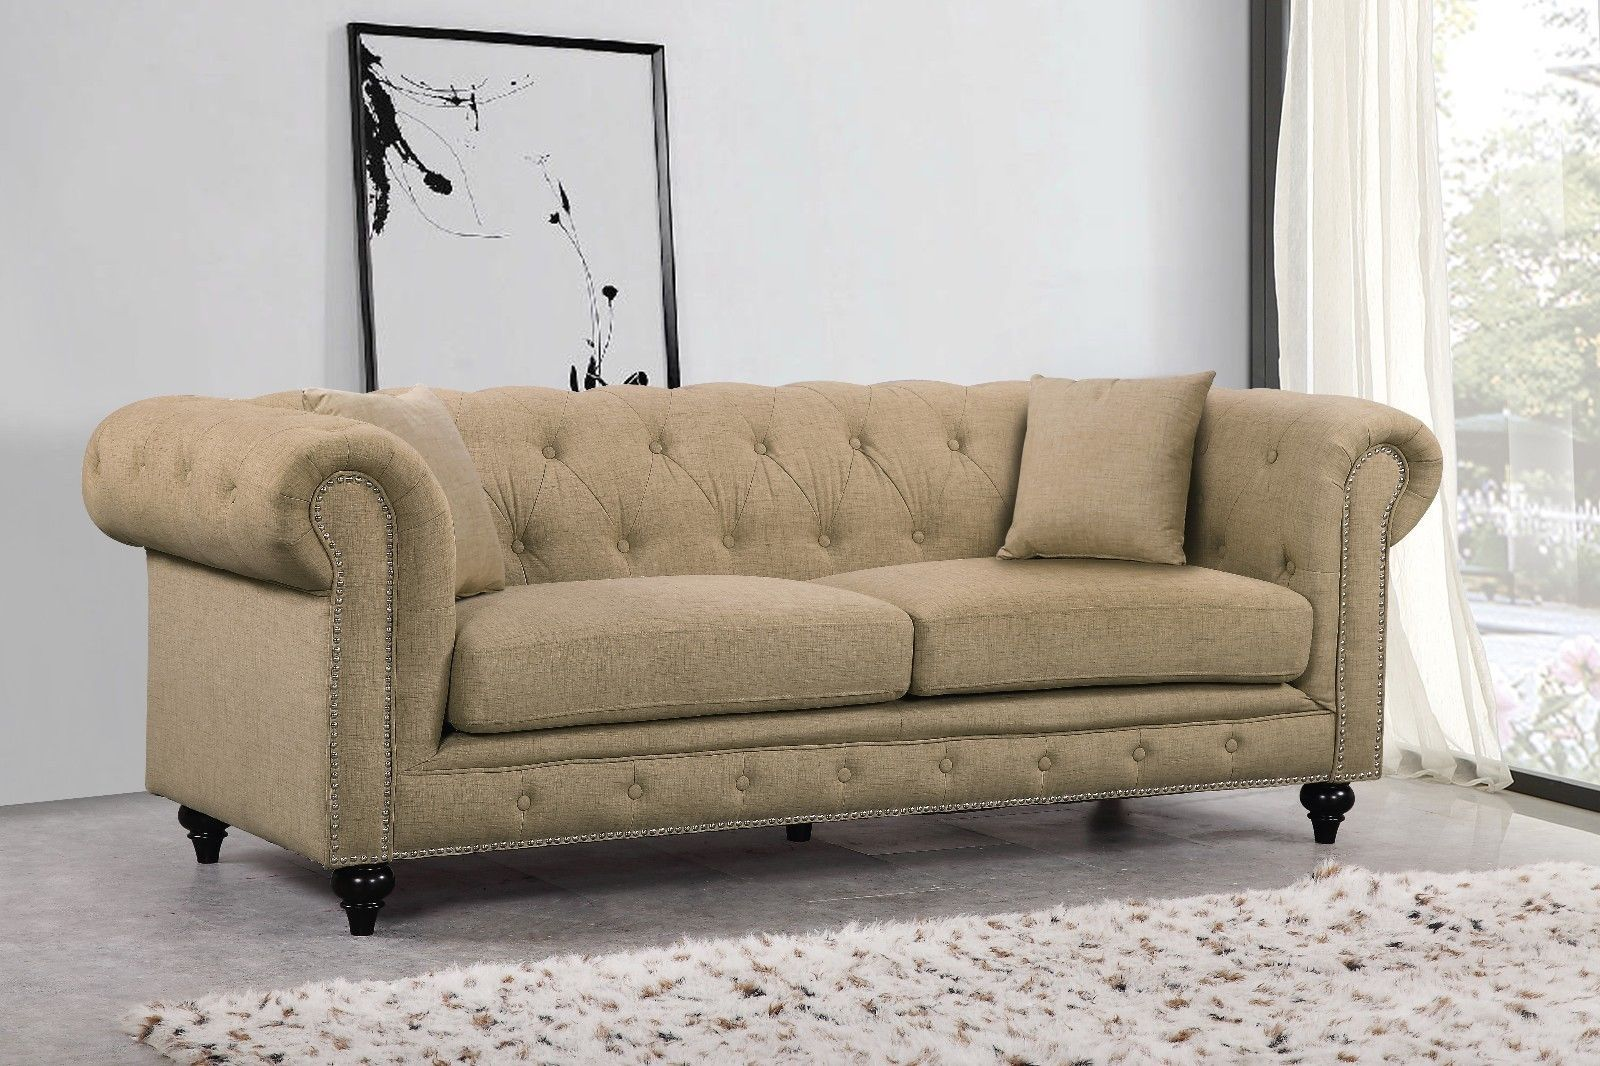 Meridian 662 Linen Fabric Living Room Sofa Tufted Sand Traditional Style